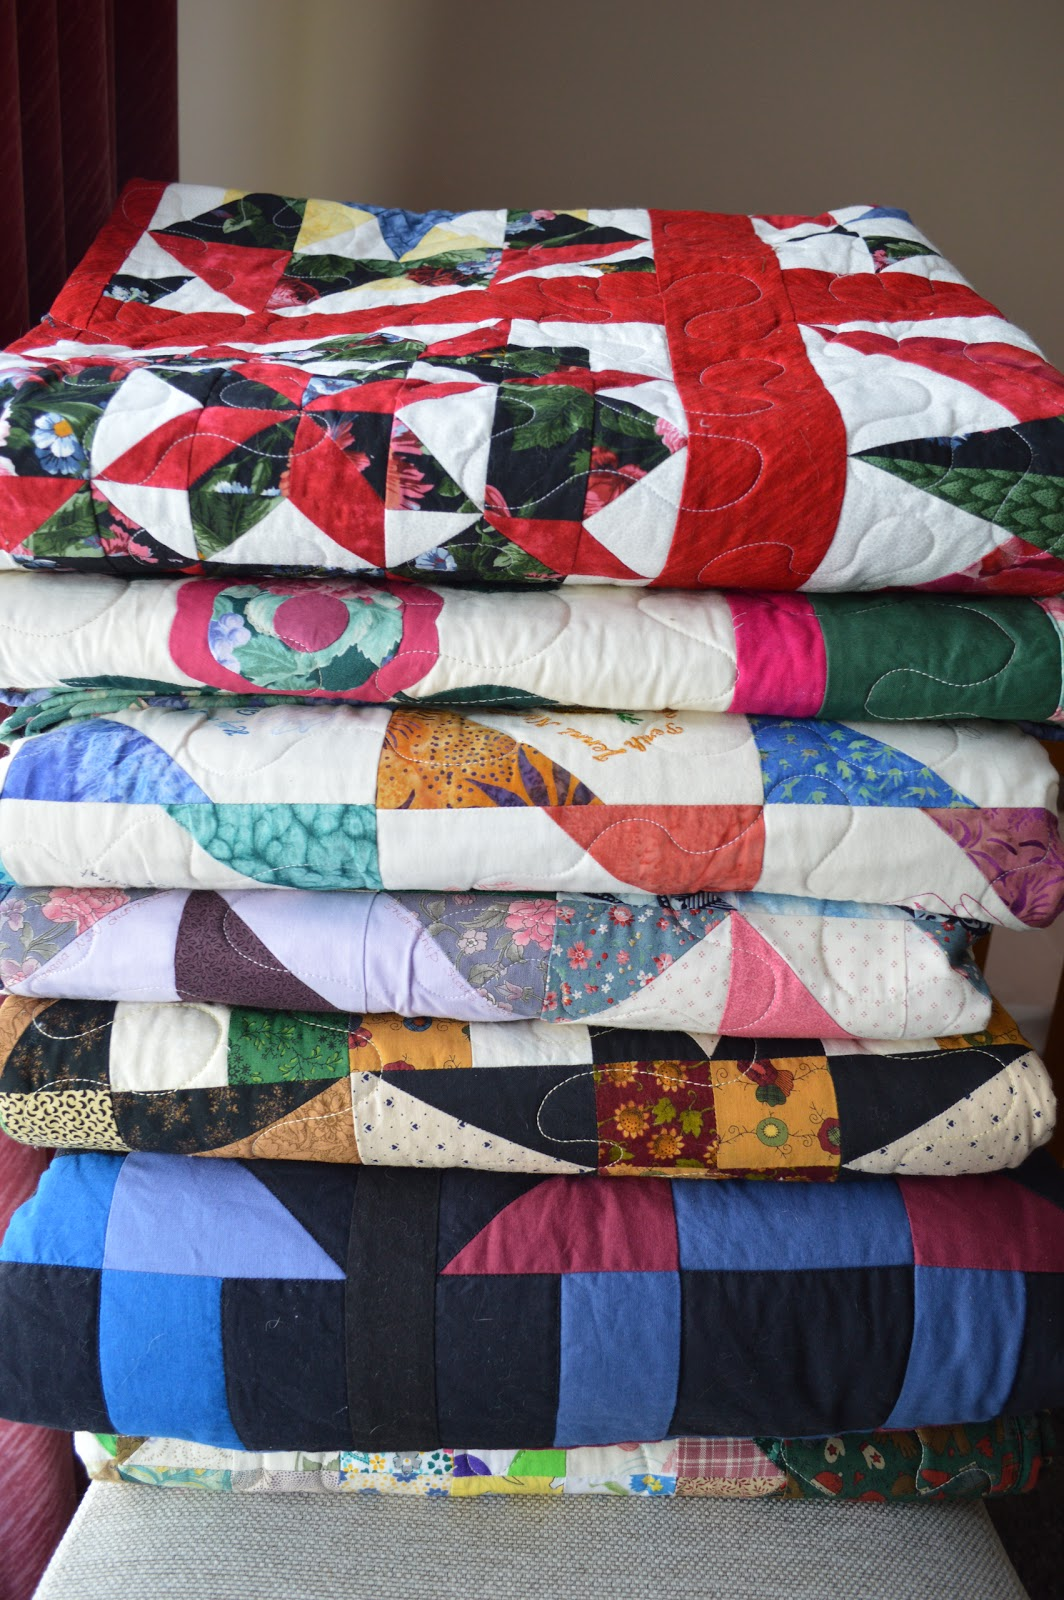 Sew Many Quilts - Too Little Time: The Gift of Comfort From Oz ... : oz quilts - Adamdwight.com